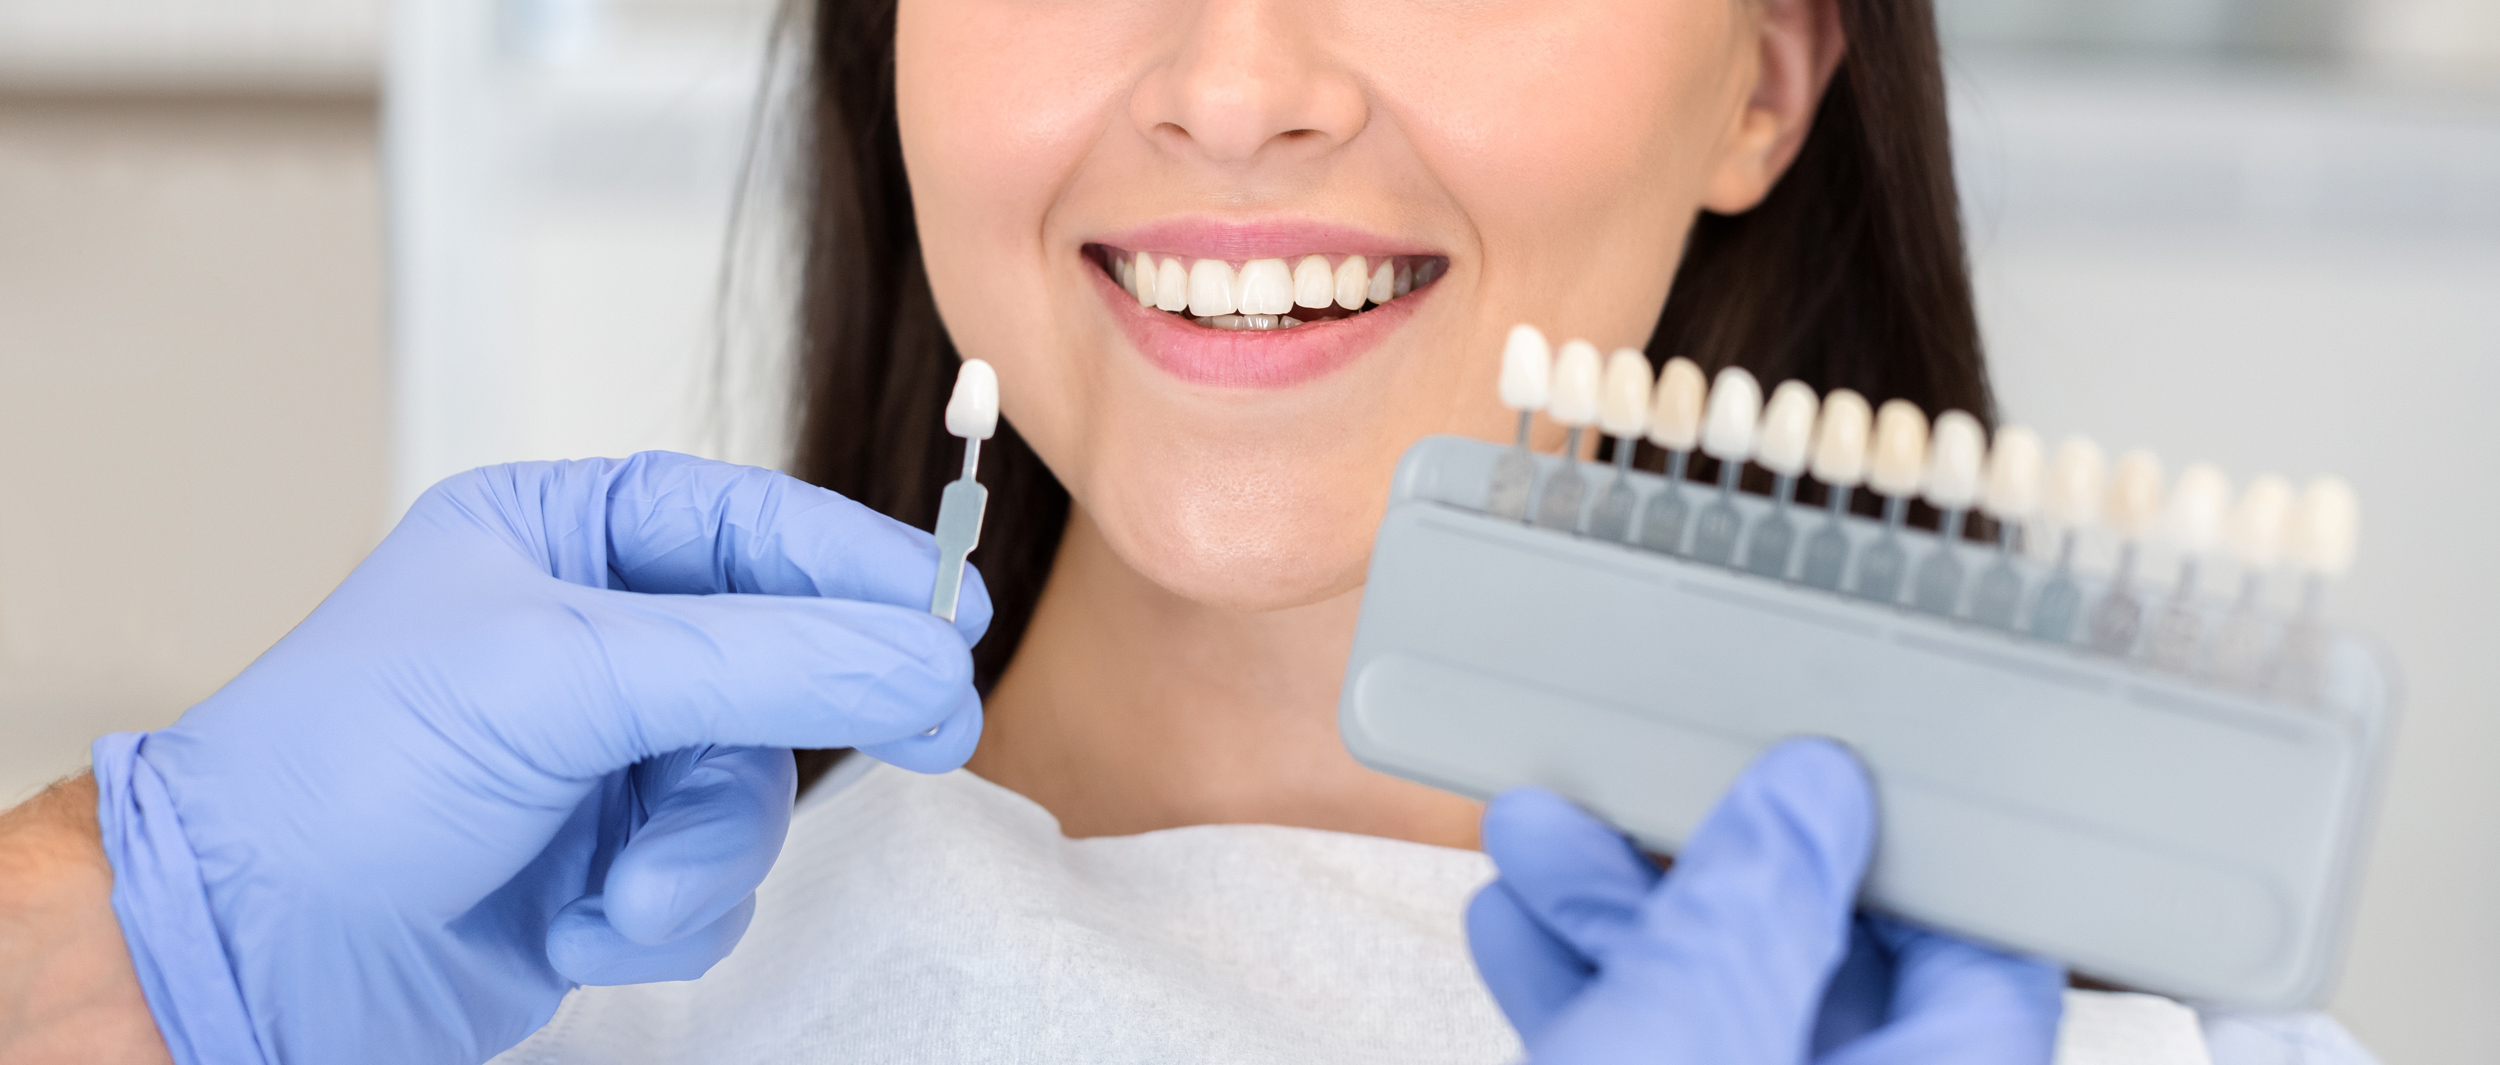 cosmetic dentistry and teeth whitening in Maryville TN